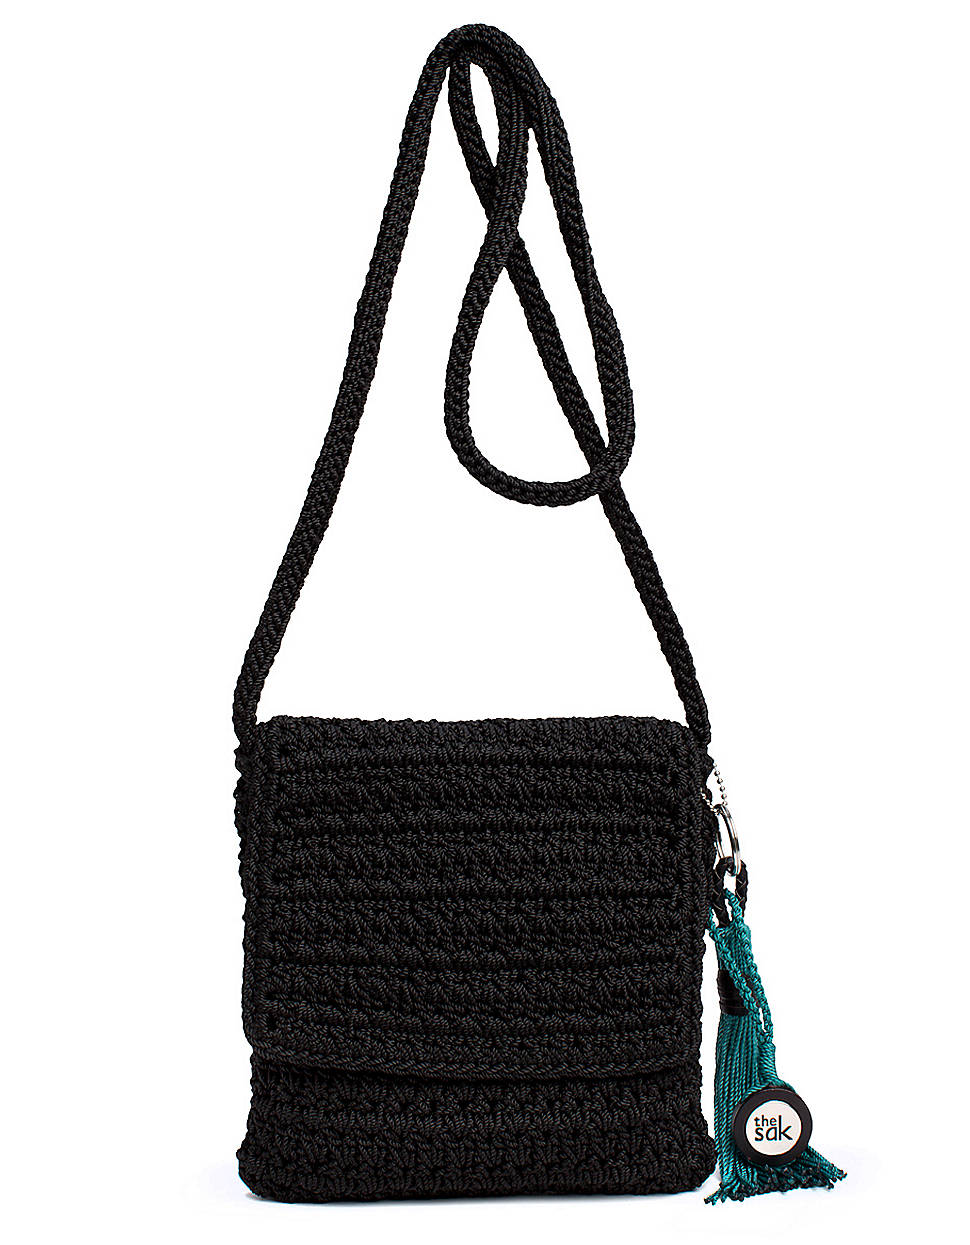 The Sak Black Crochet Handbag : The Sak Casual Classics Crochet Flap Shoulder Bag in Black Lyst